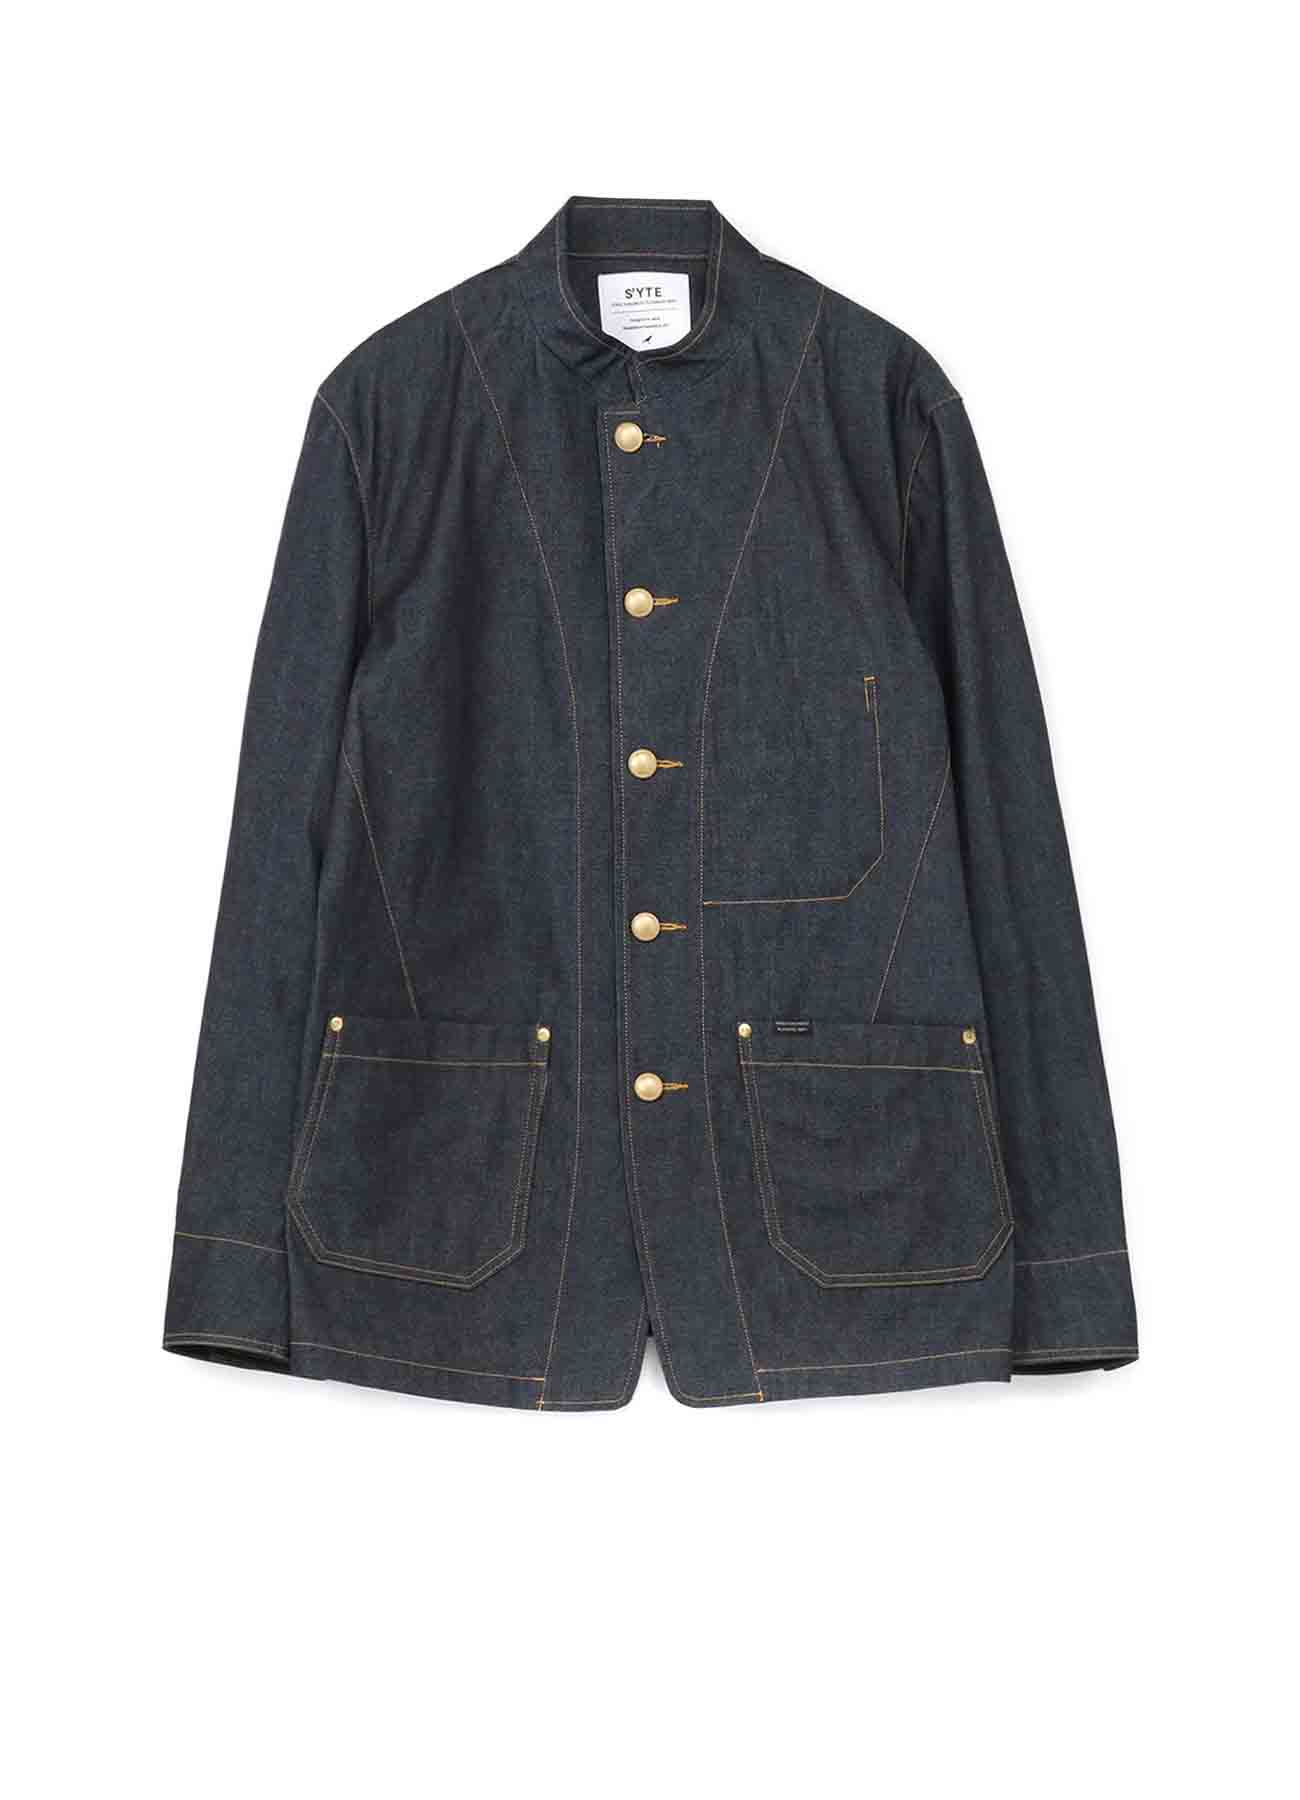 10 oz Denim stand collar Coveralls Jacket